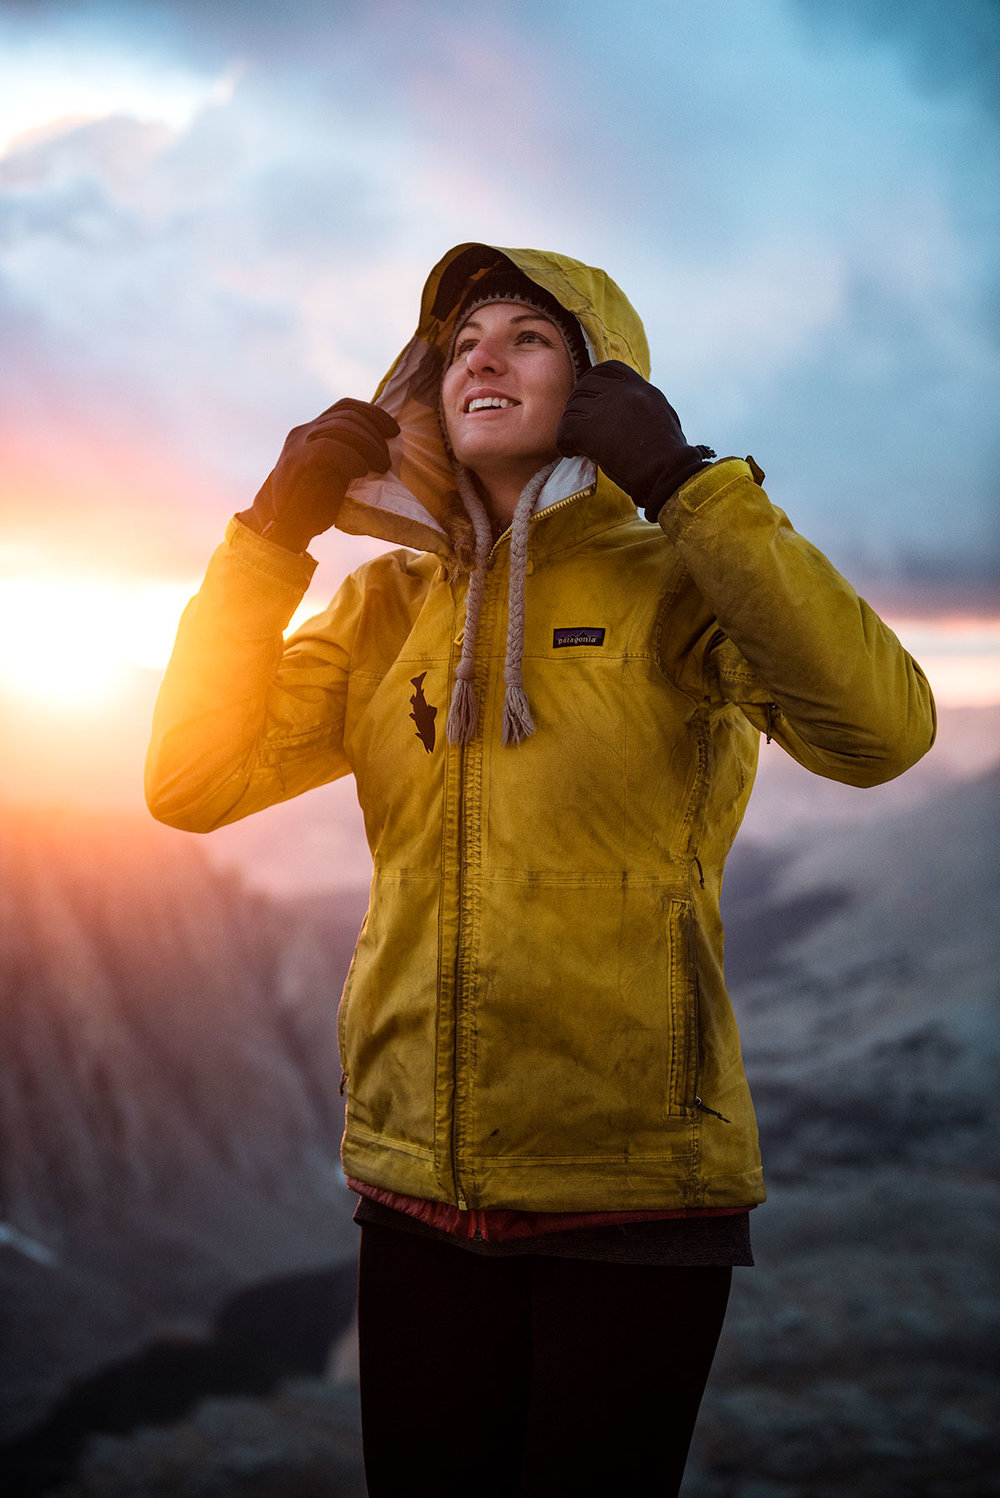 austin-trigg-patagonia-hiking-john-muir-trail-wilderness-california-adventure-outside-camp-sierra-nevada-lifestyle-trail-rest-bivy-hood-jacket-sunset.jpg